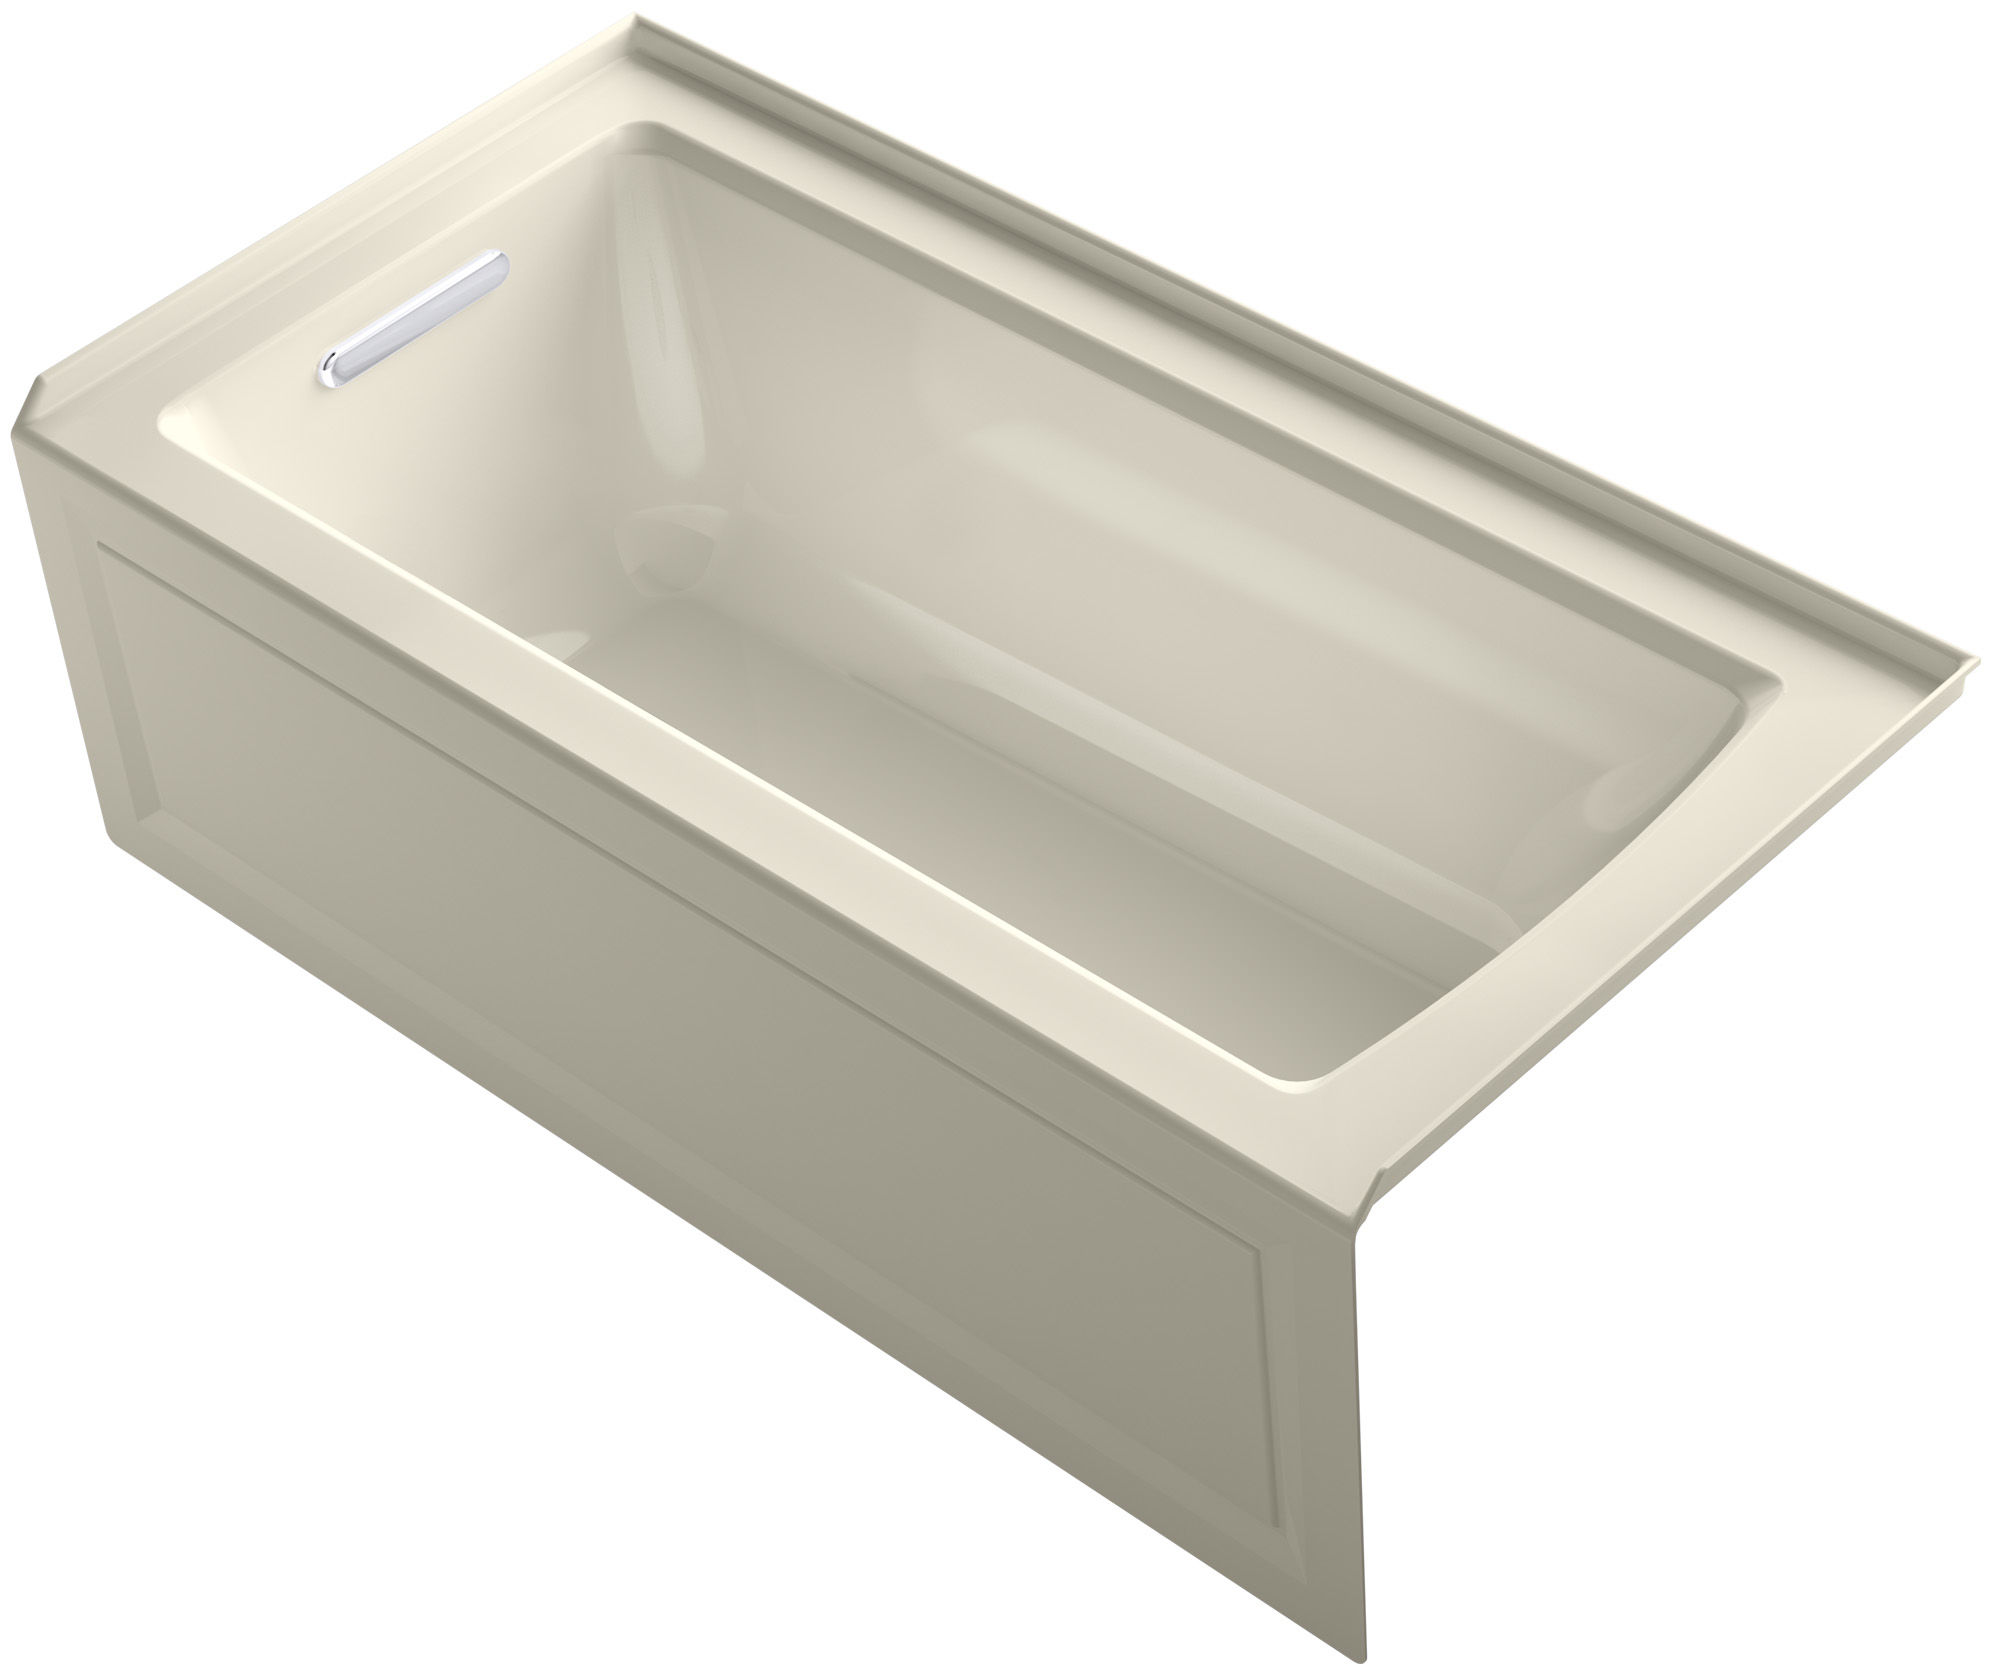 for bathtubs cat tubs arc less overstock two moen soaker roman faucet home tub garden high brand chrome handle